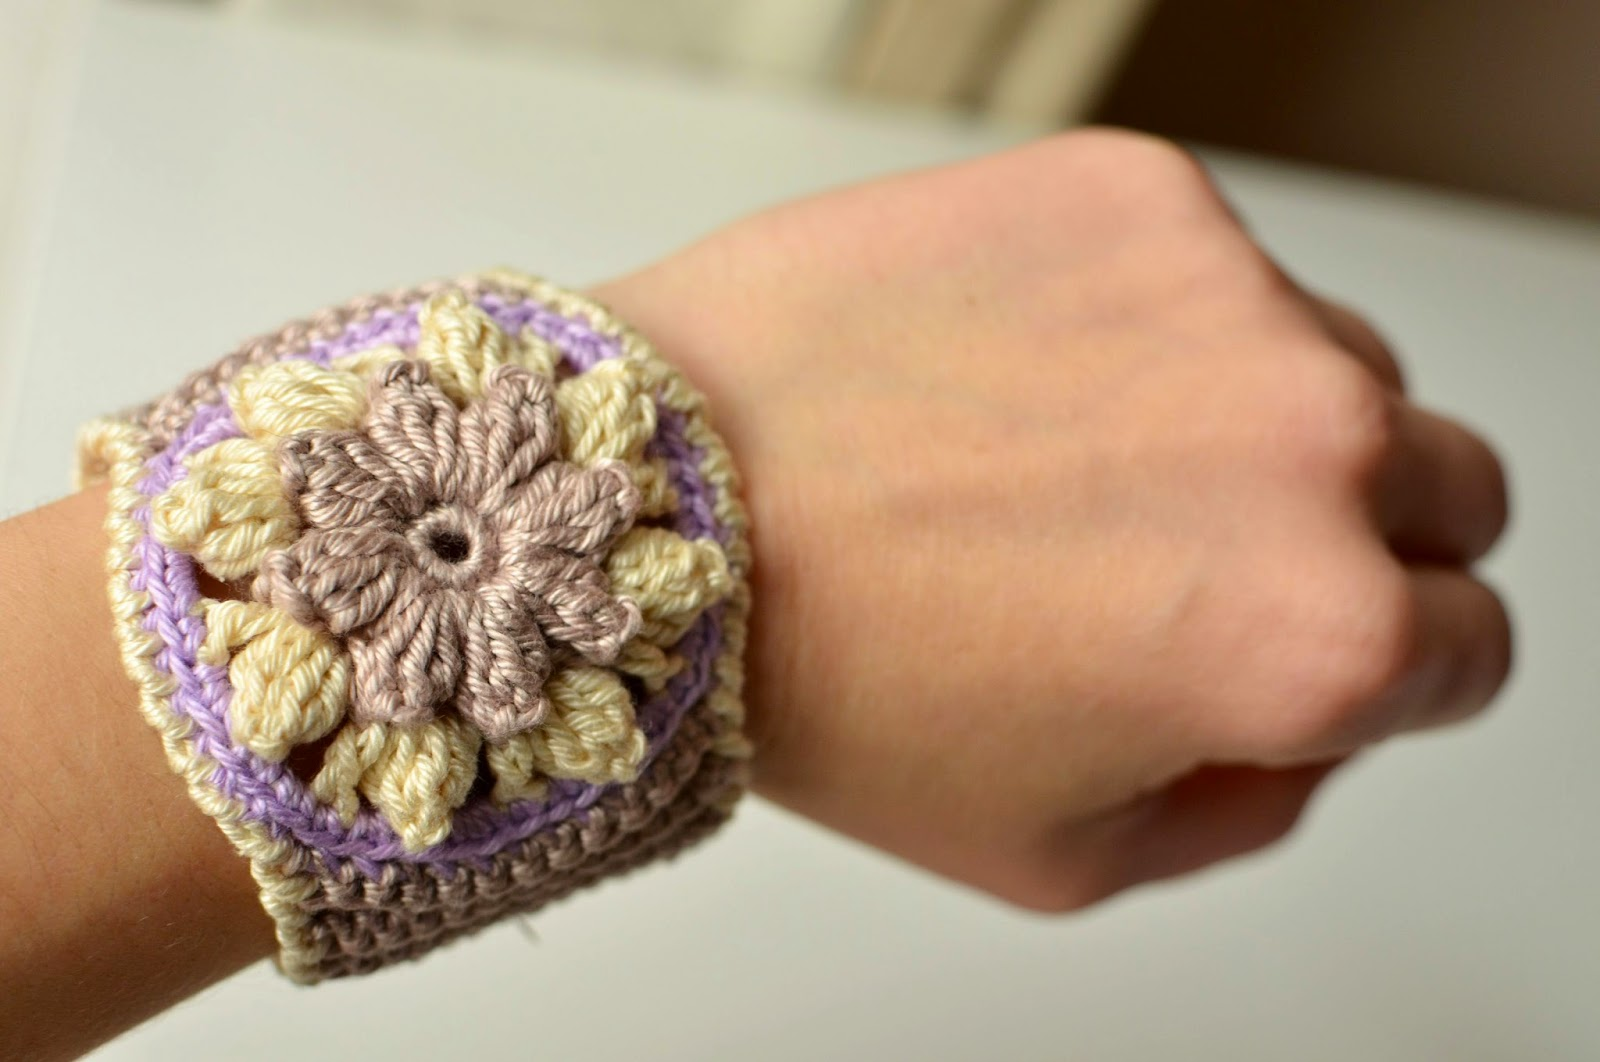 Crocheted bracelet with popcorn stitches